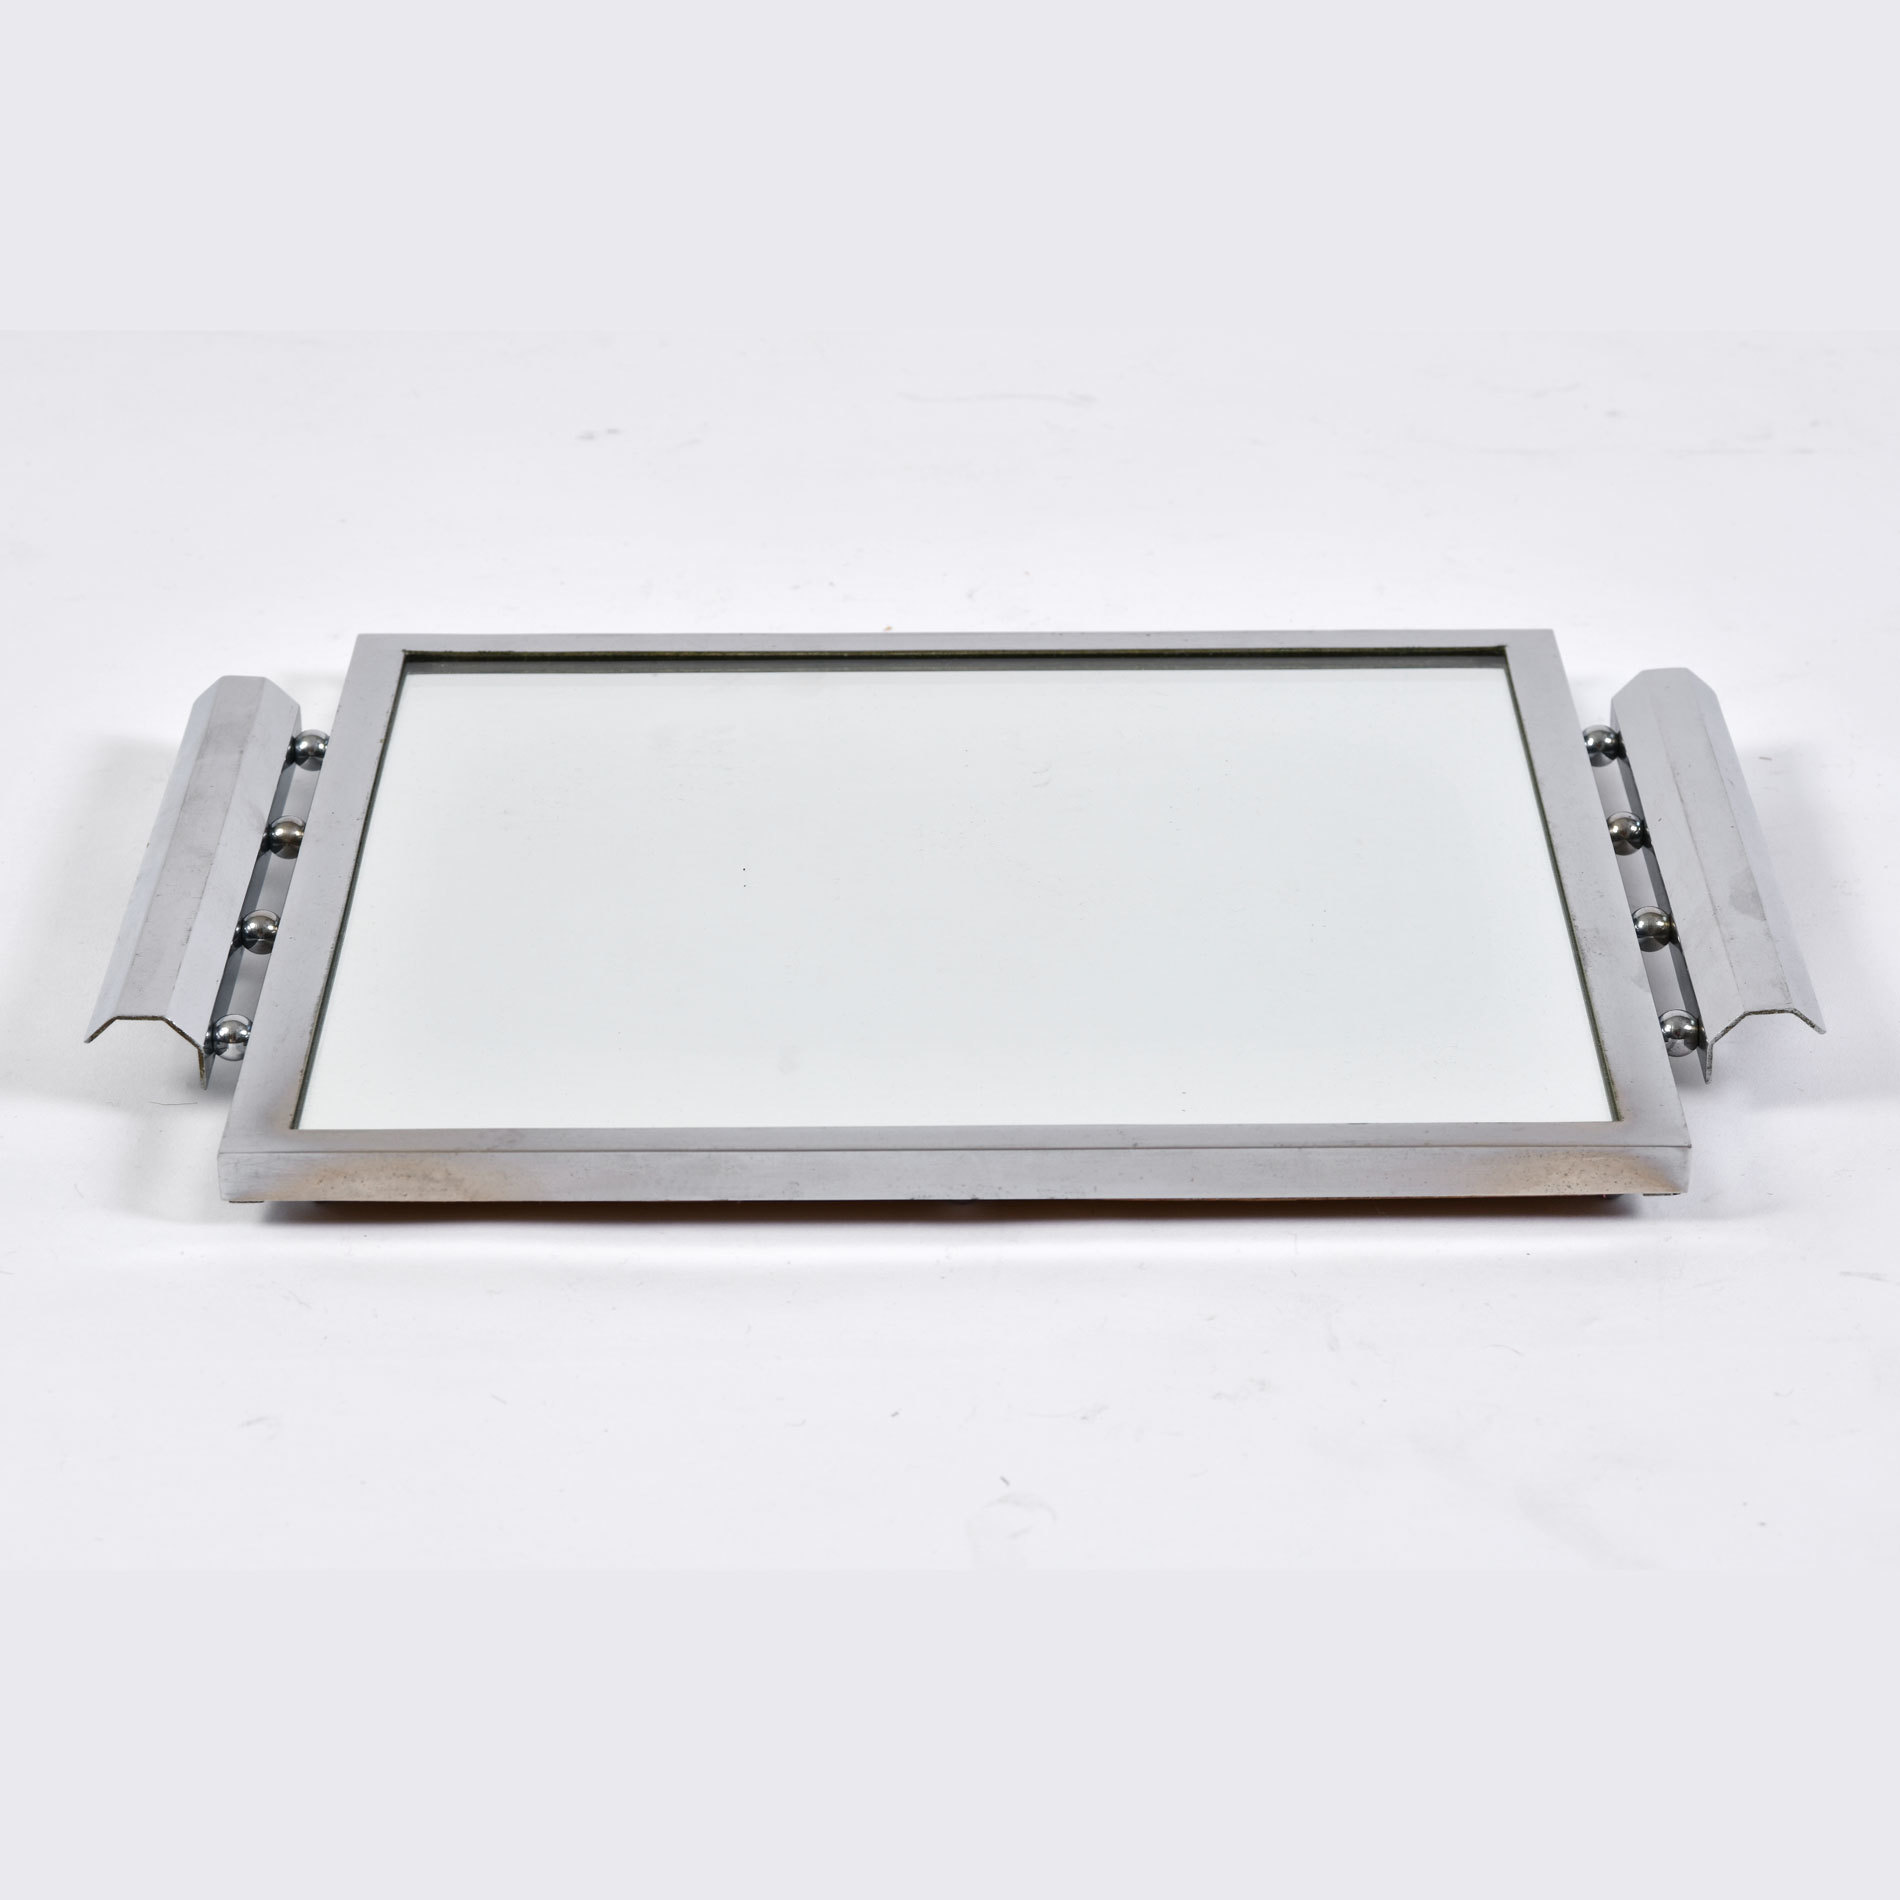 The image for Deco Tray 01